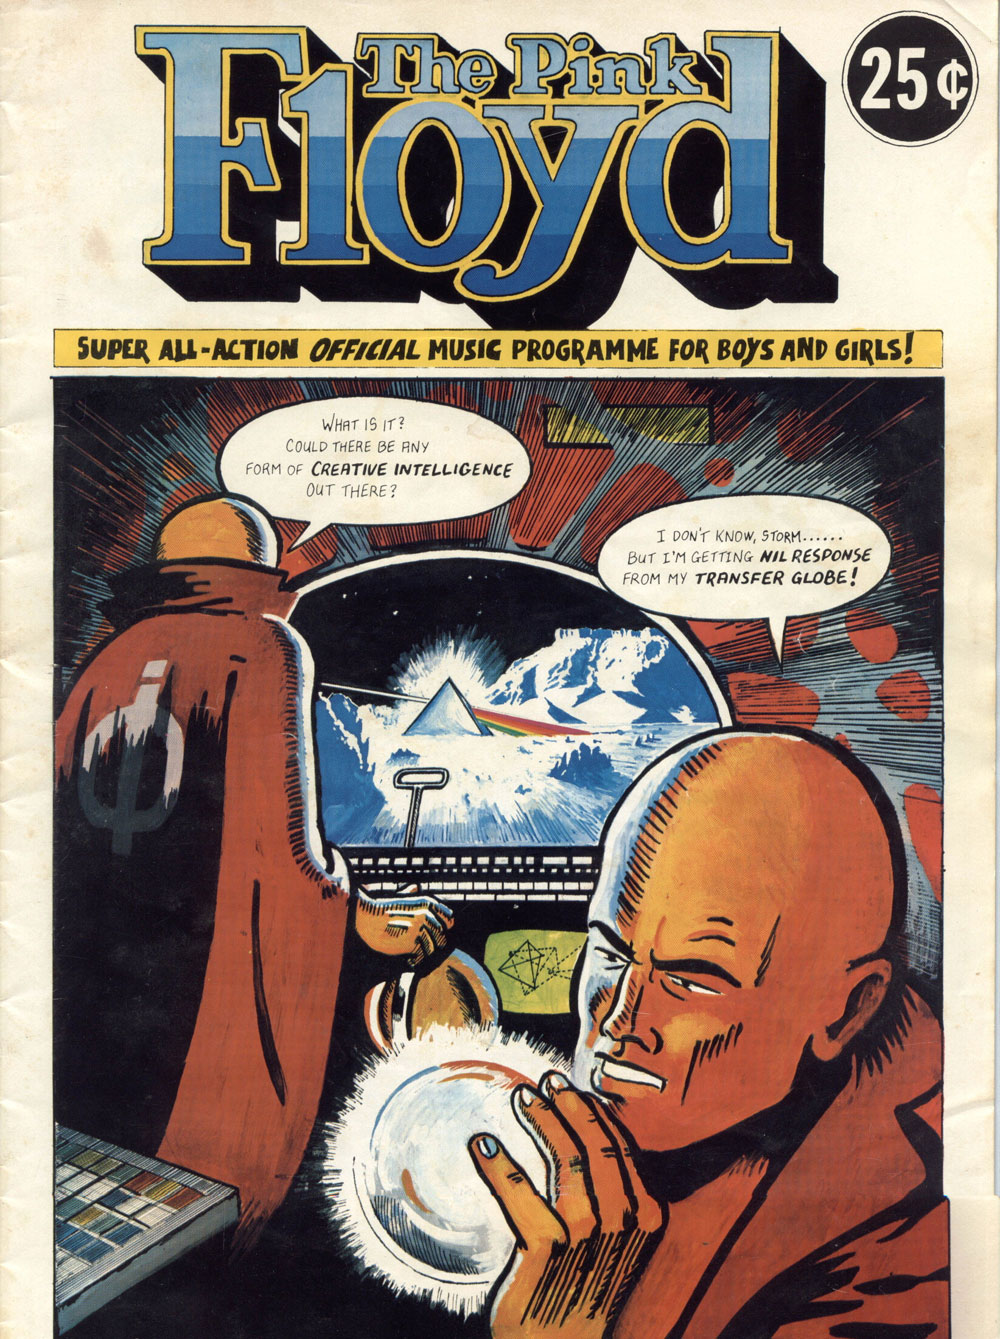 In Full Pink Floyd S Dark Side Of The Moon Comic Book Programme